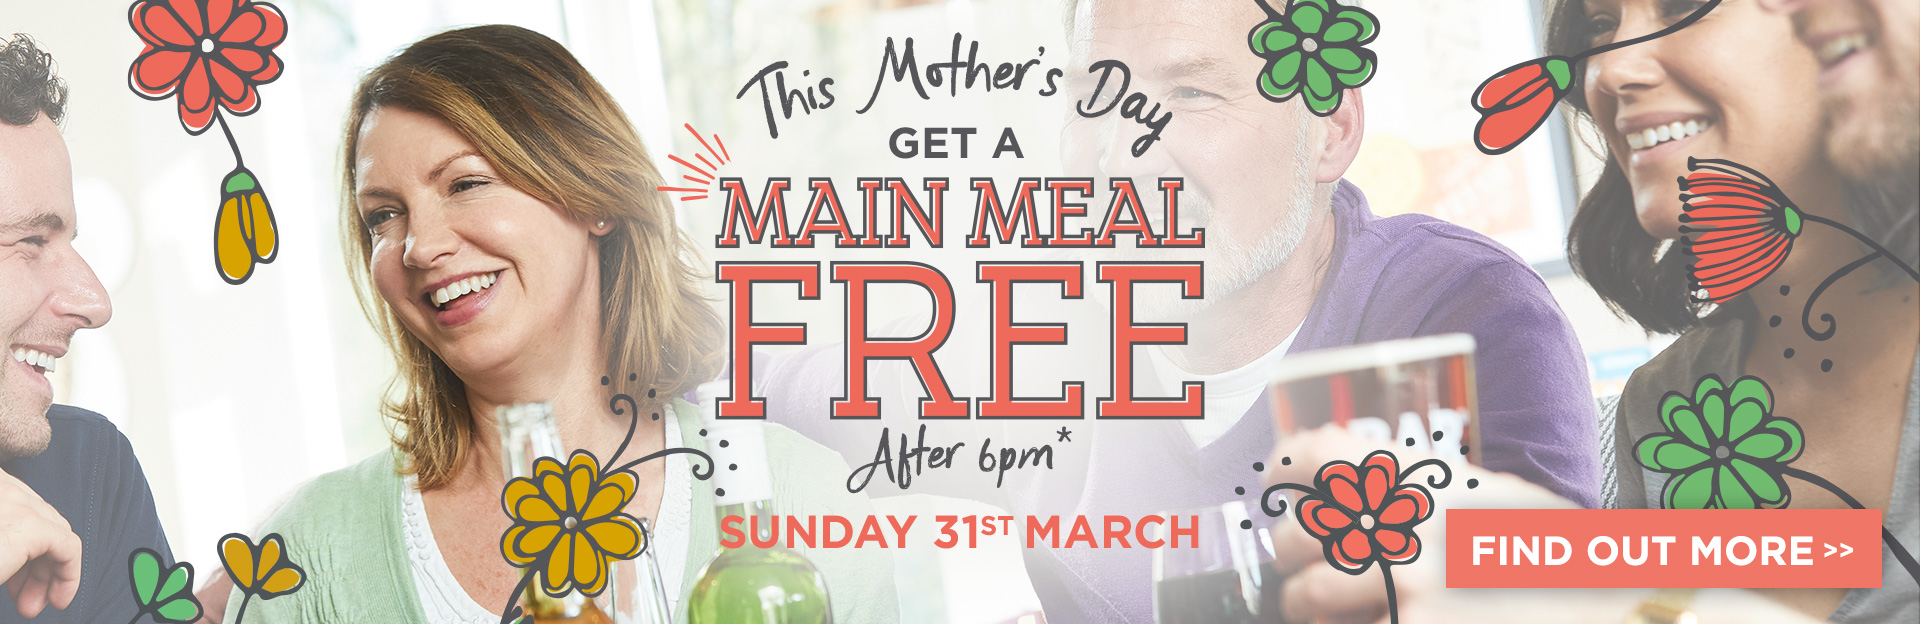 Mother's Day at Fair Maid